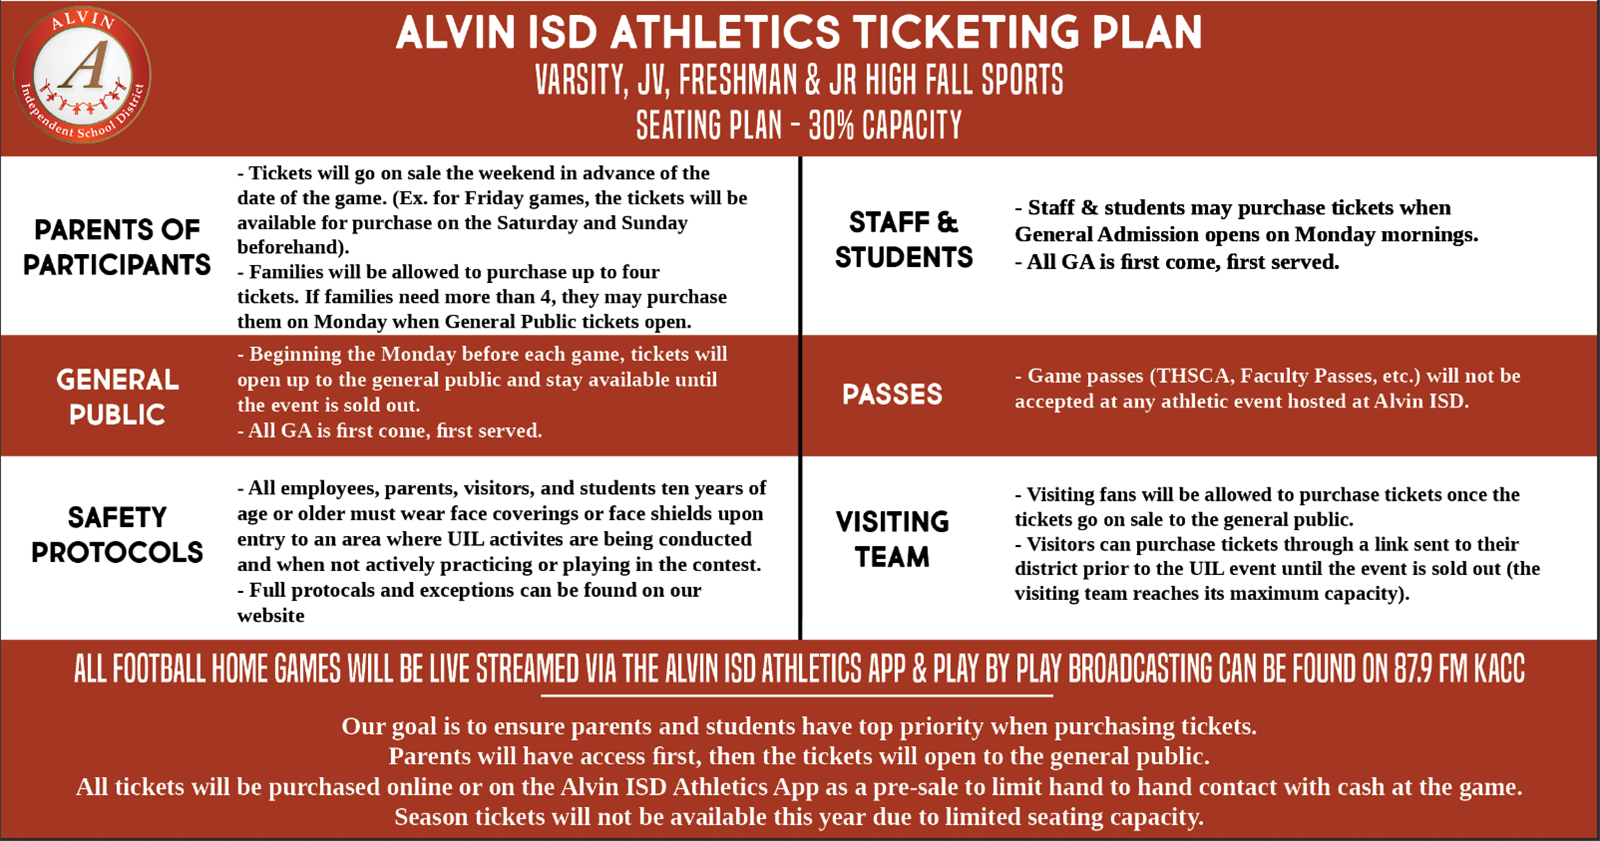 AISD Ticketing Plan